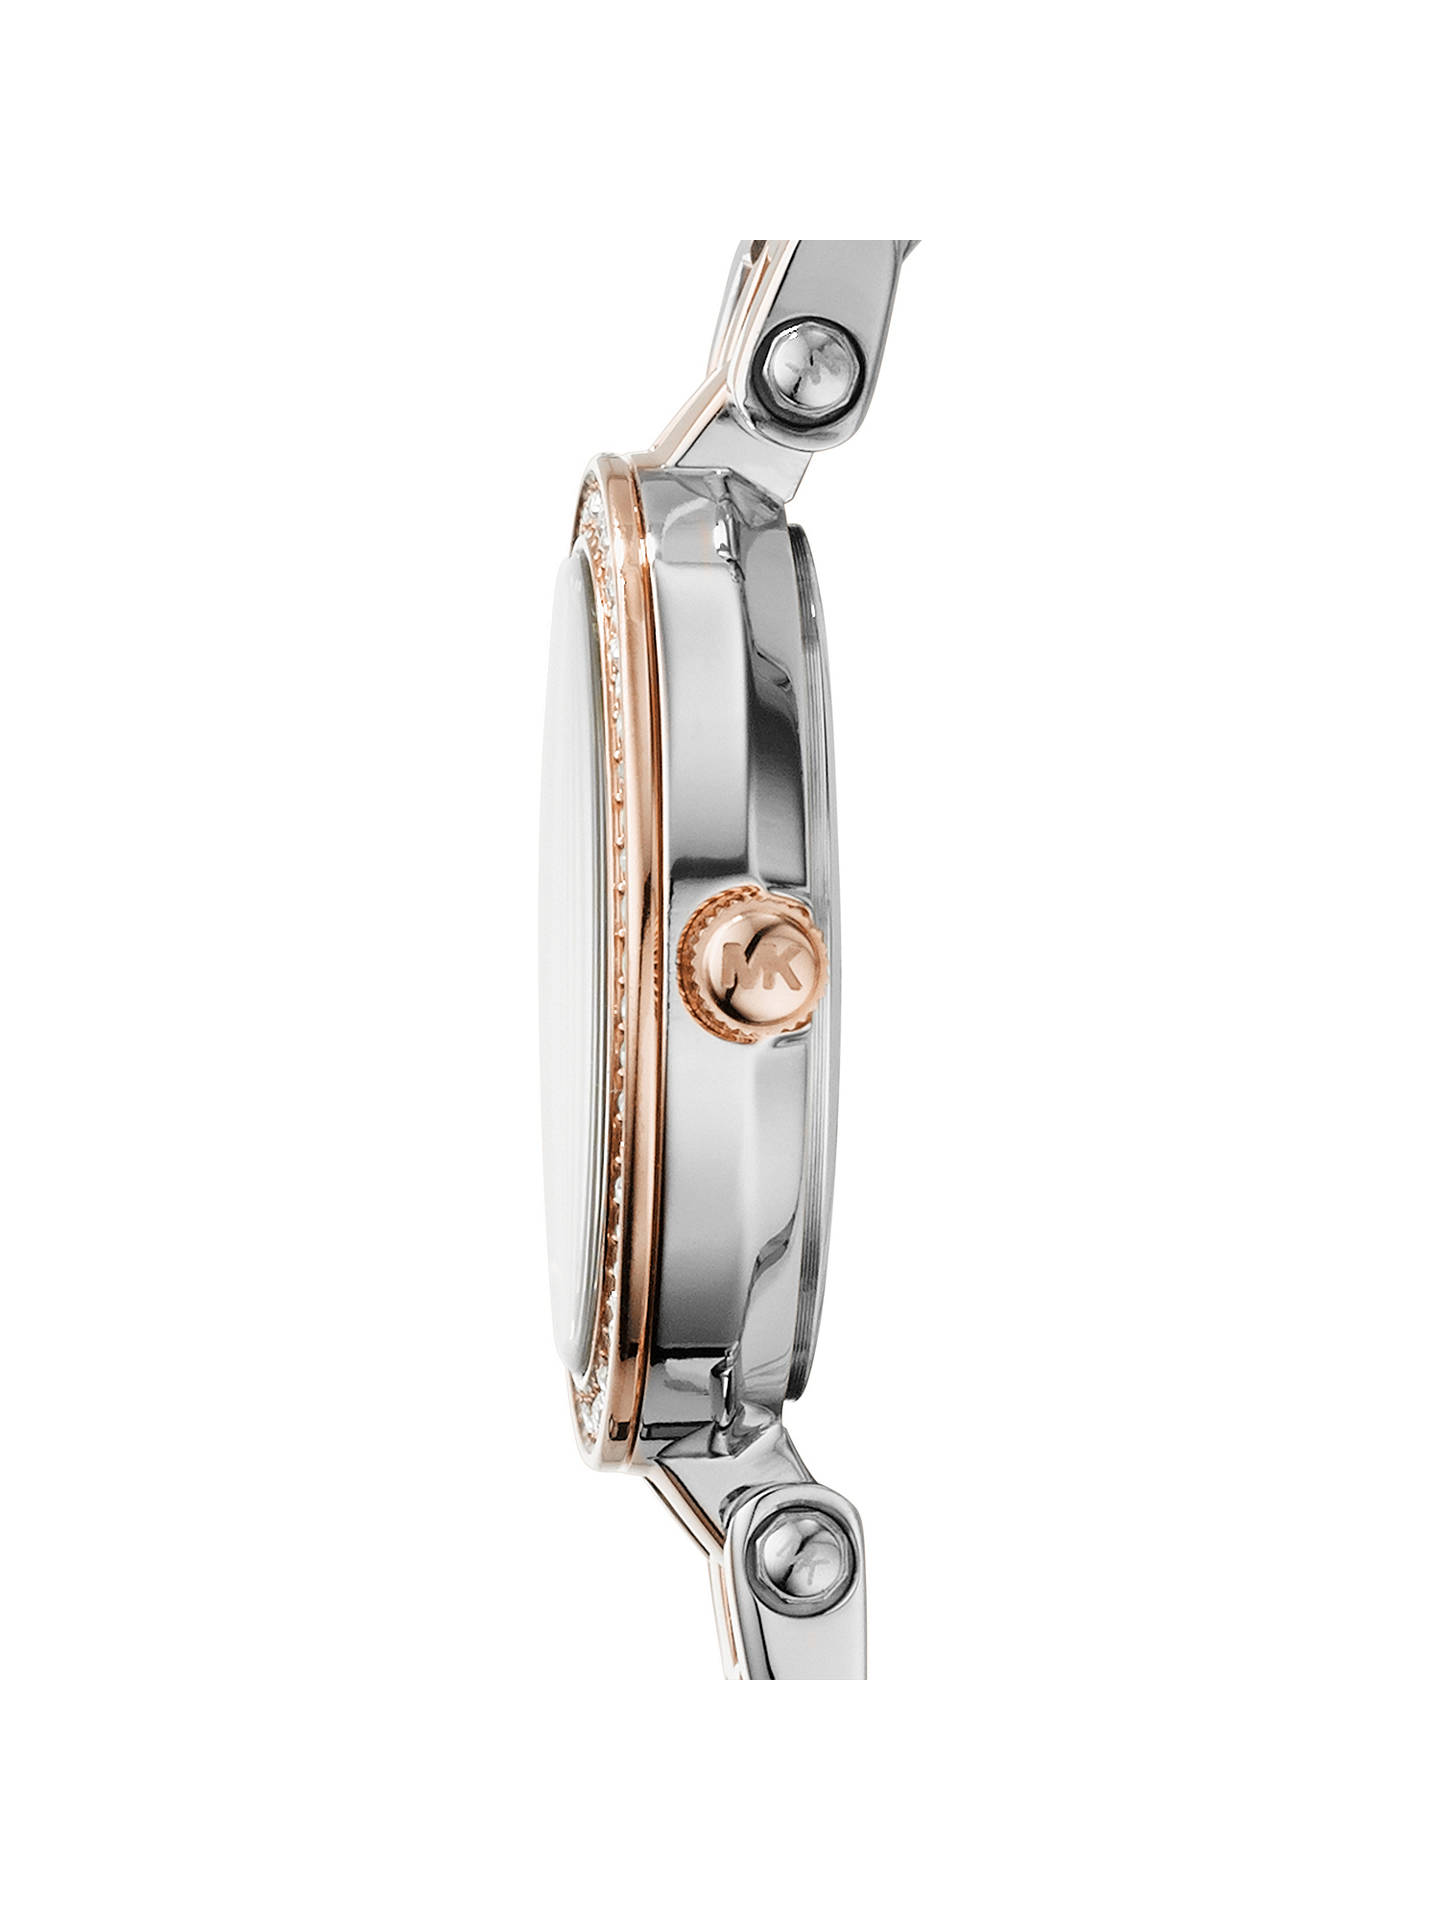 BuyMichael Kors MK3298 Women's Mini Two Tone Stainless Steel Darci Glitz Watch, Silver / Rose Gold Online at johnlewis.com